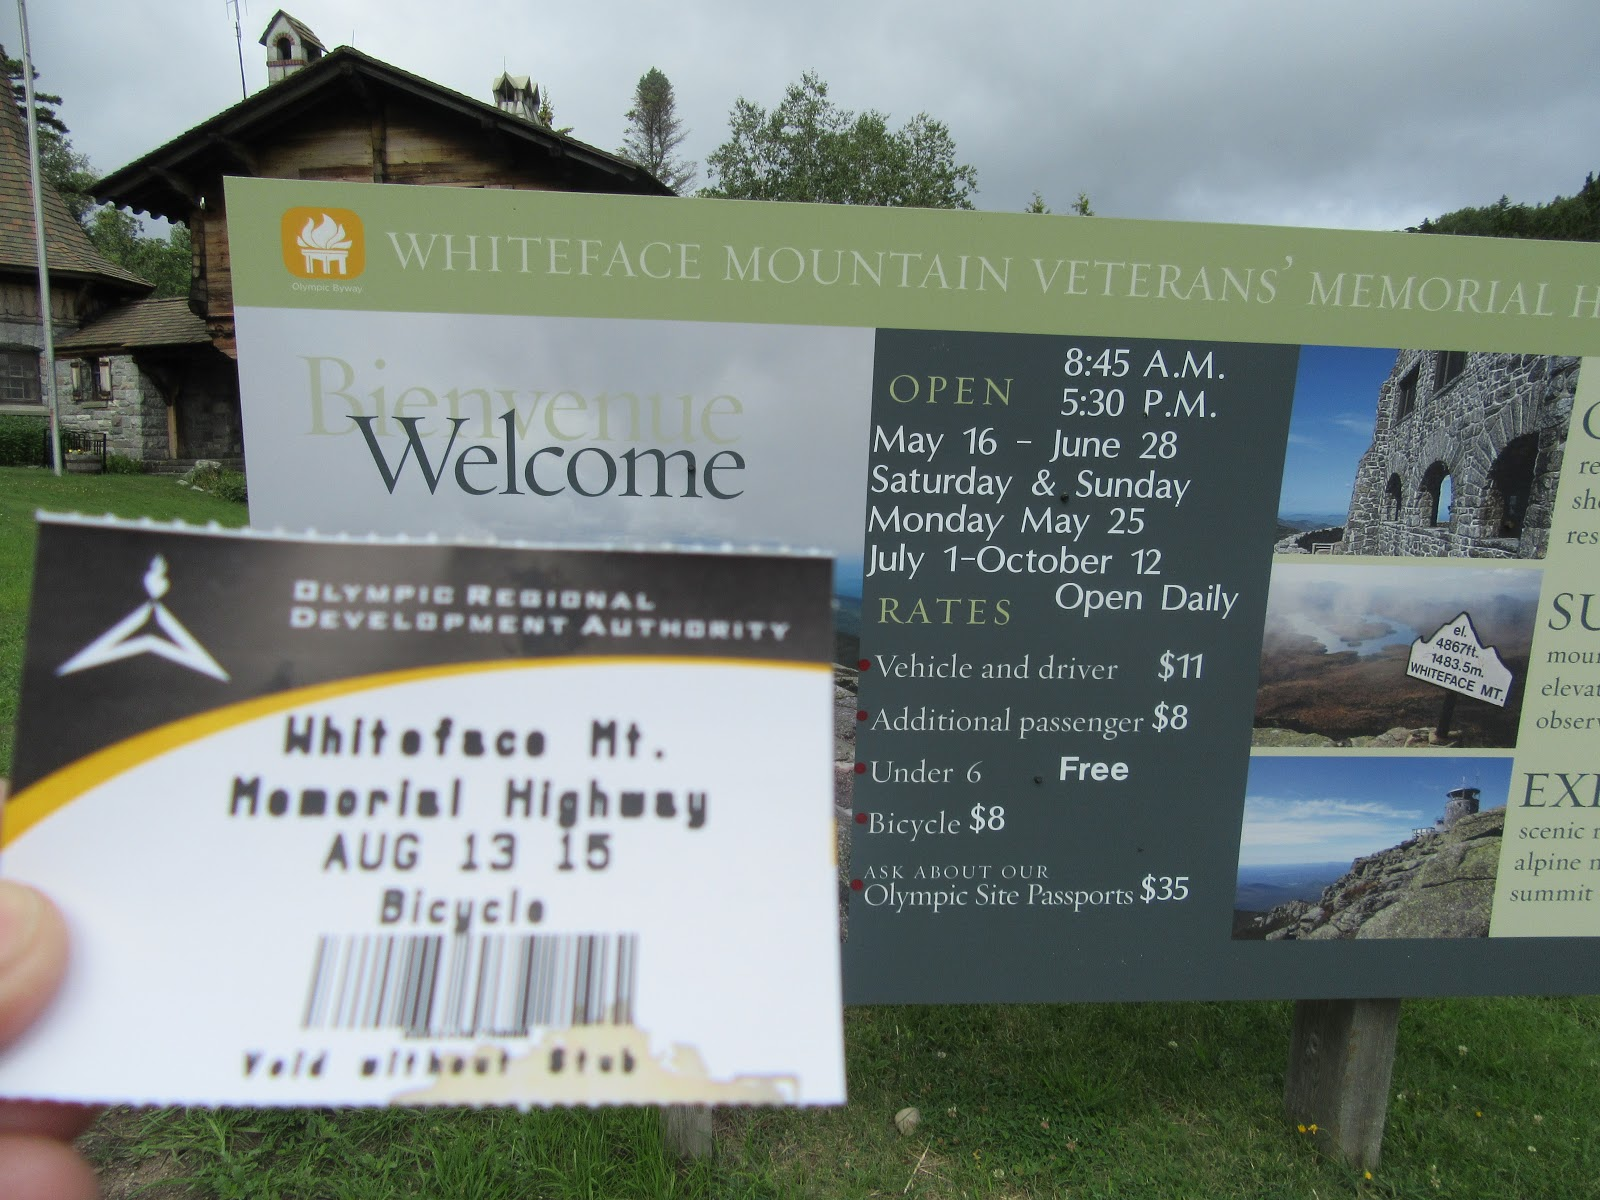 Ticket to enter Whiteface Memorial Highway by bicycle